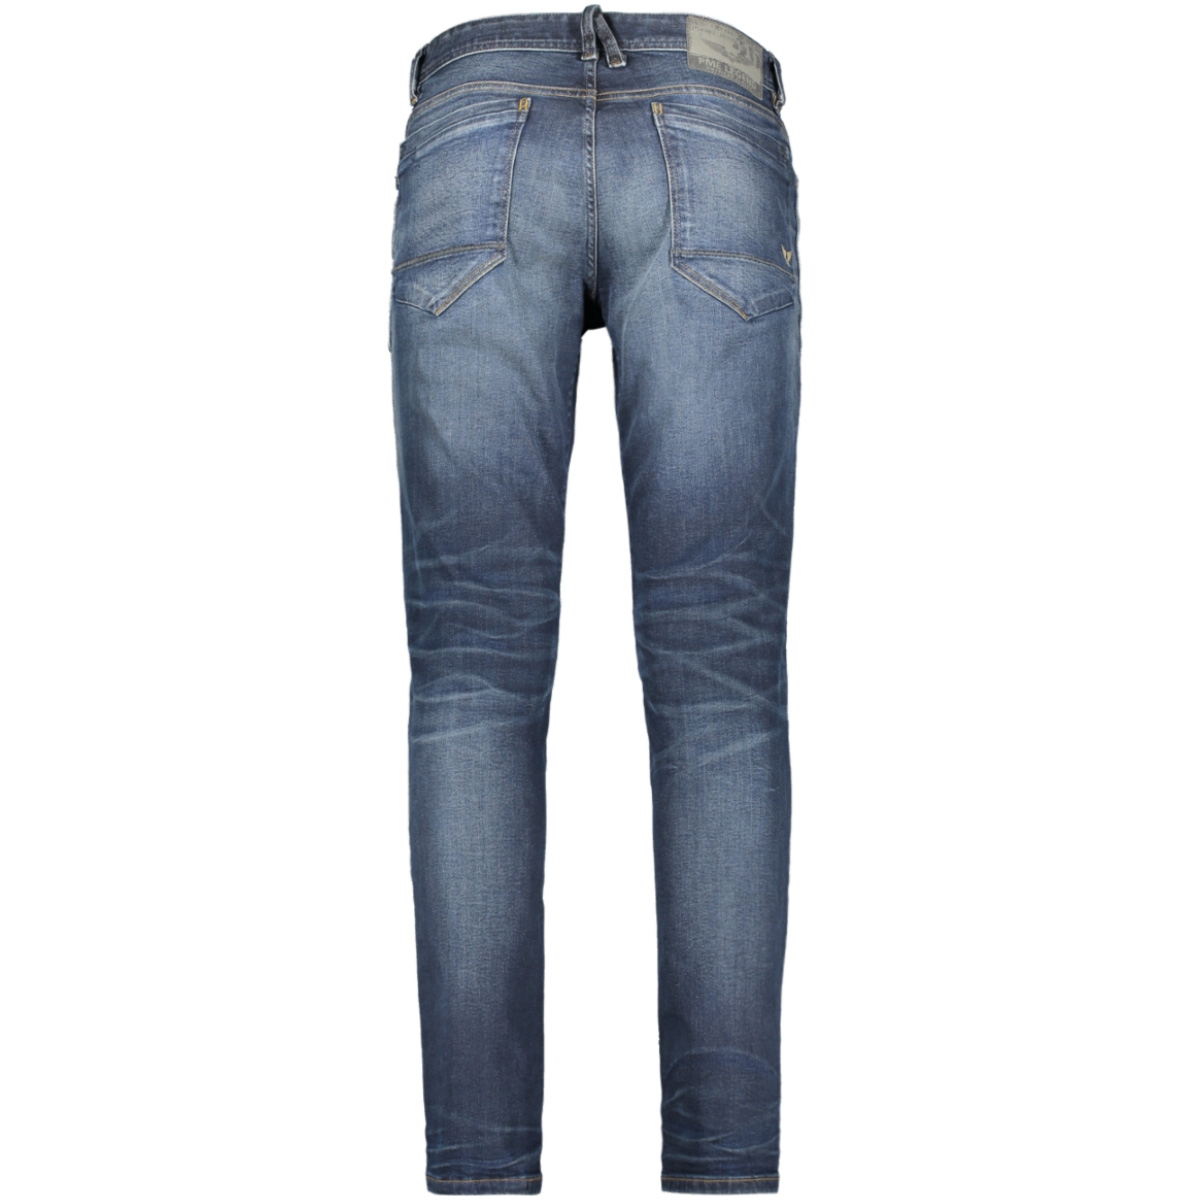 lockstar ptr196405 pme legend jeans agb